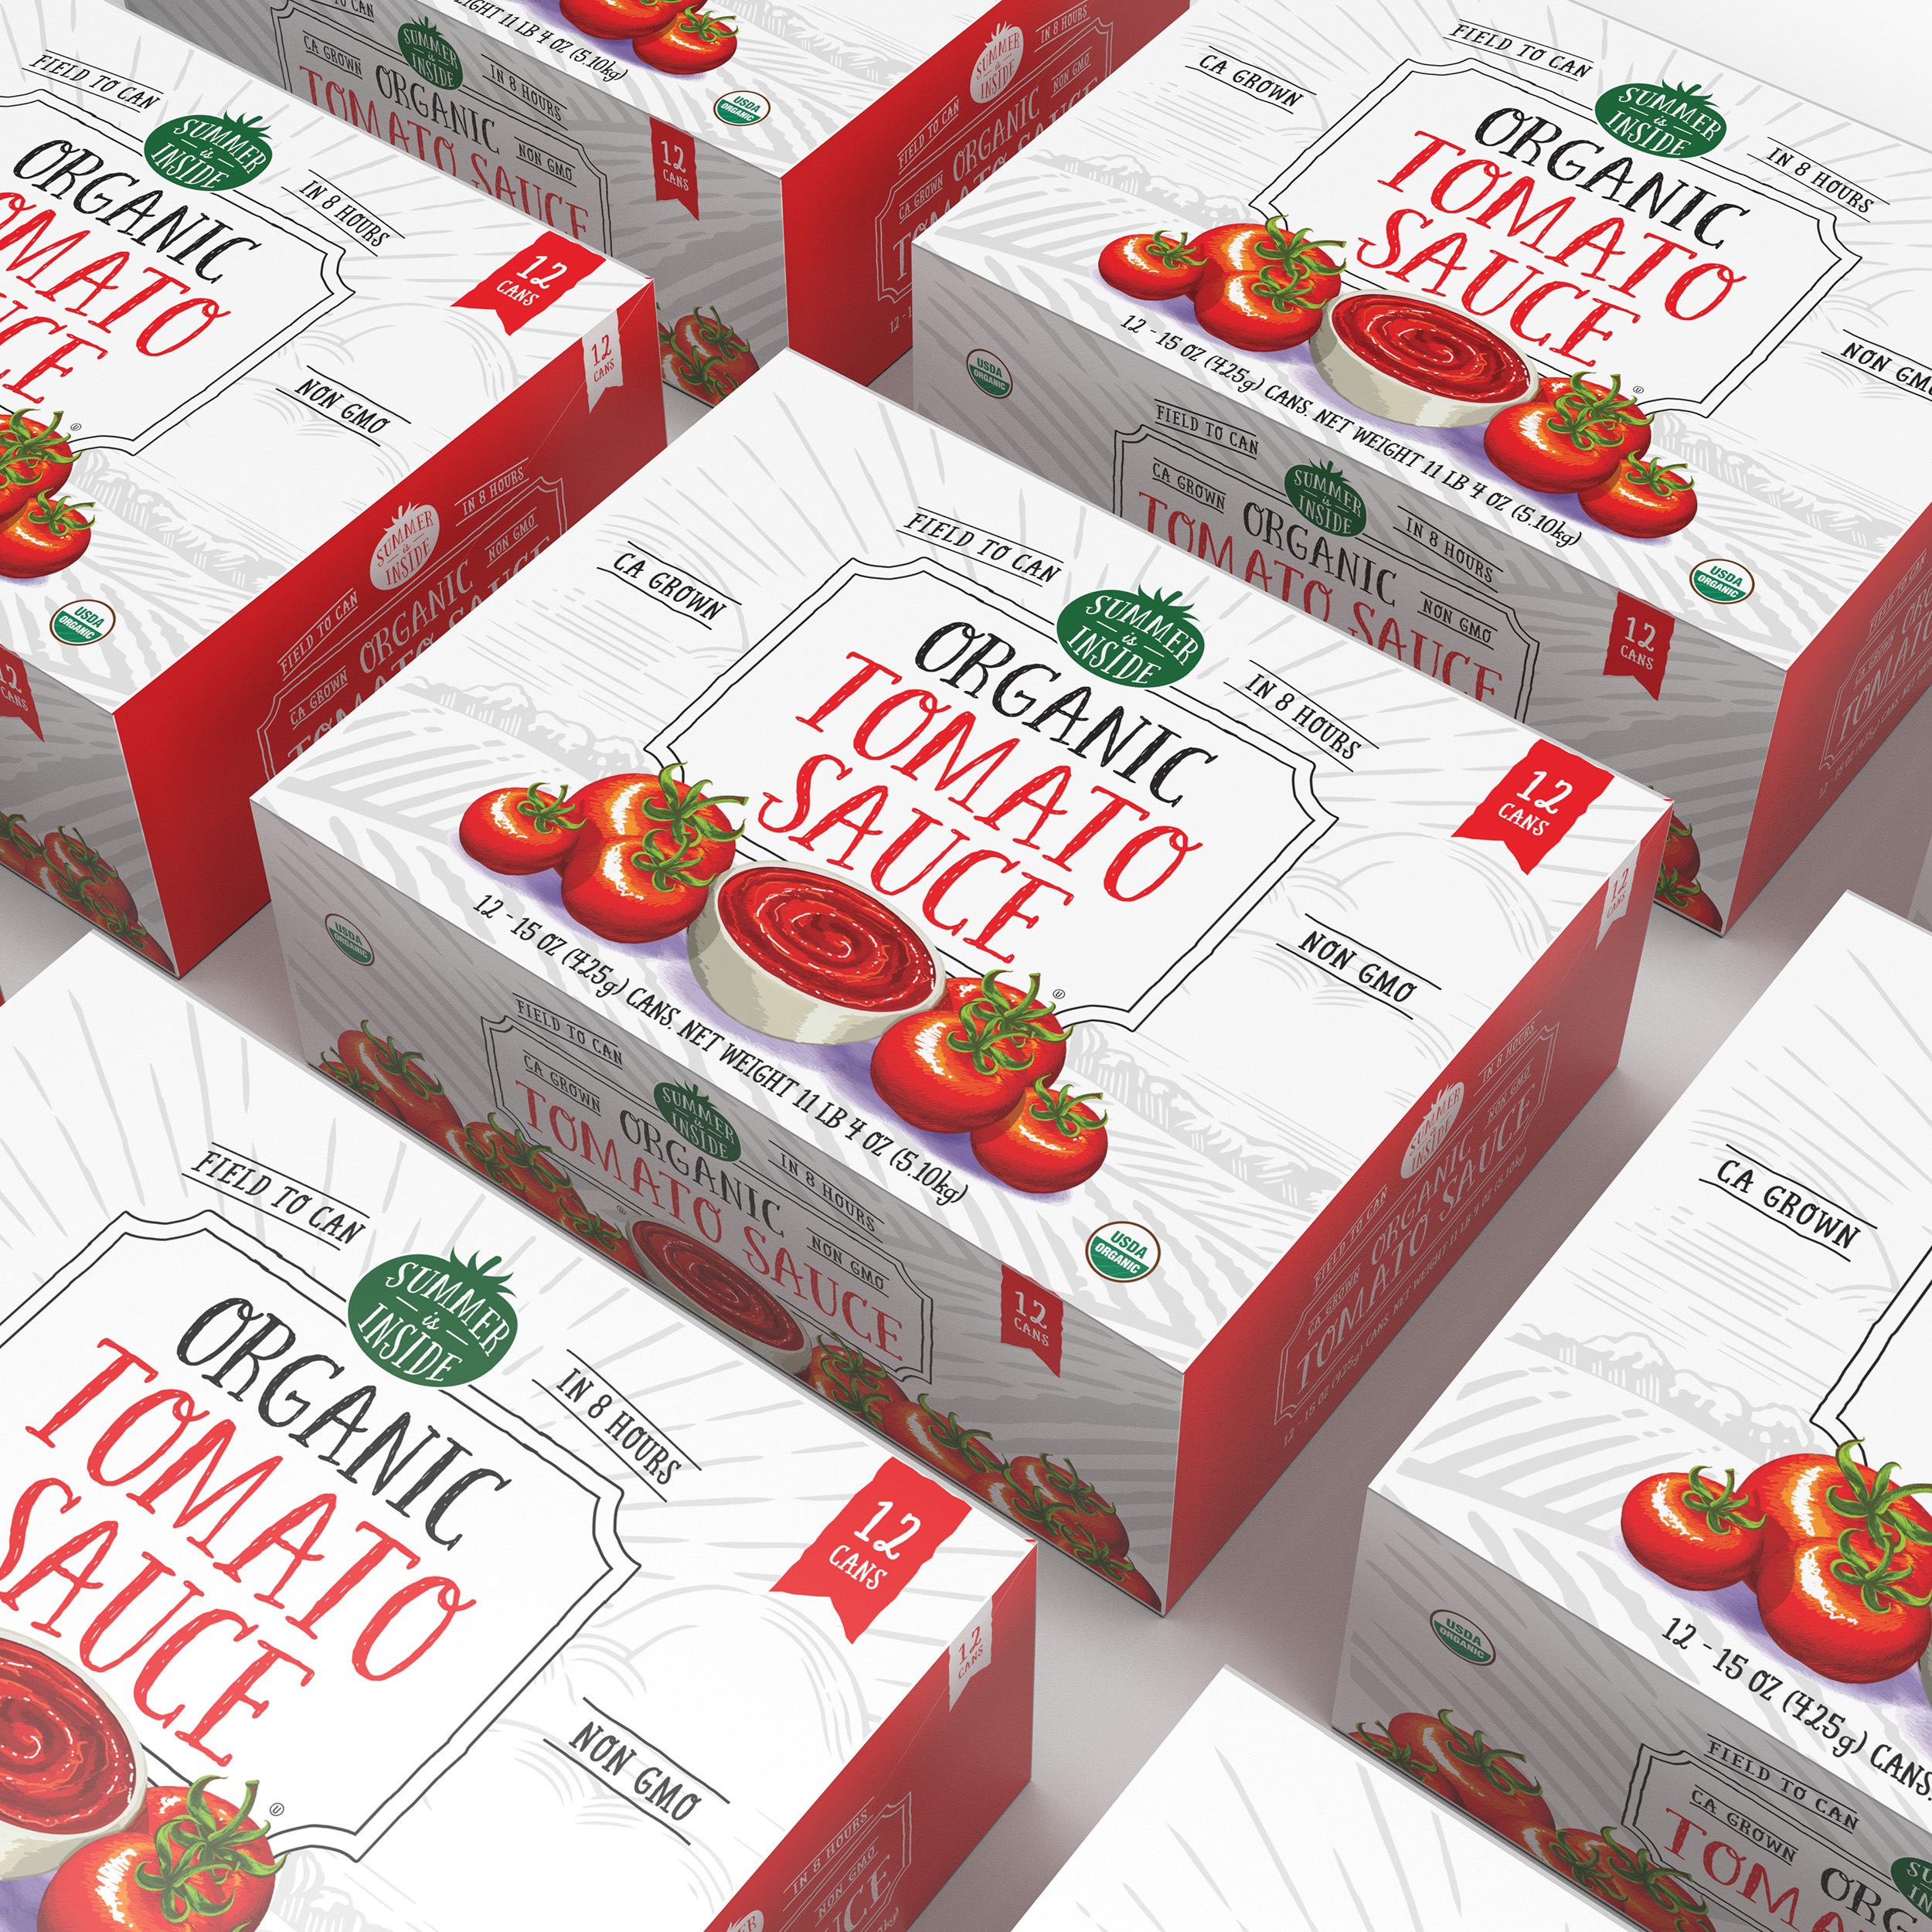 Summer Is Inside Organic Canned Tomatoes